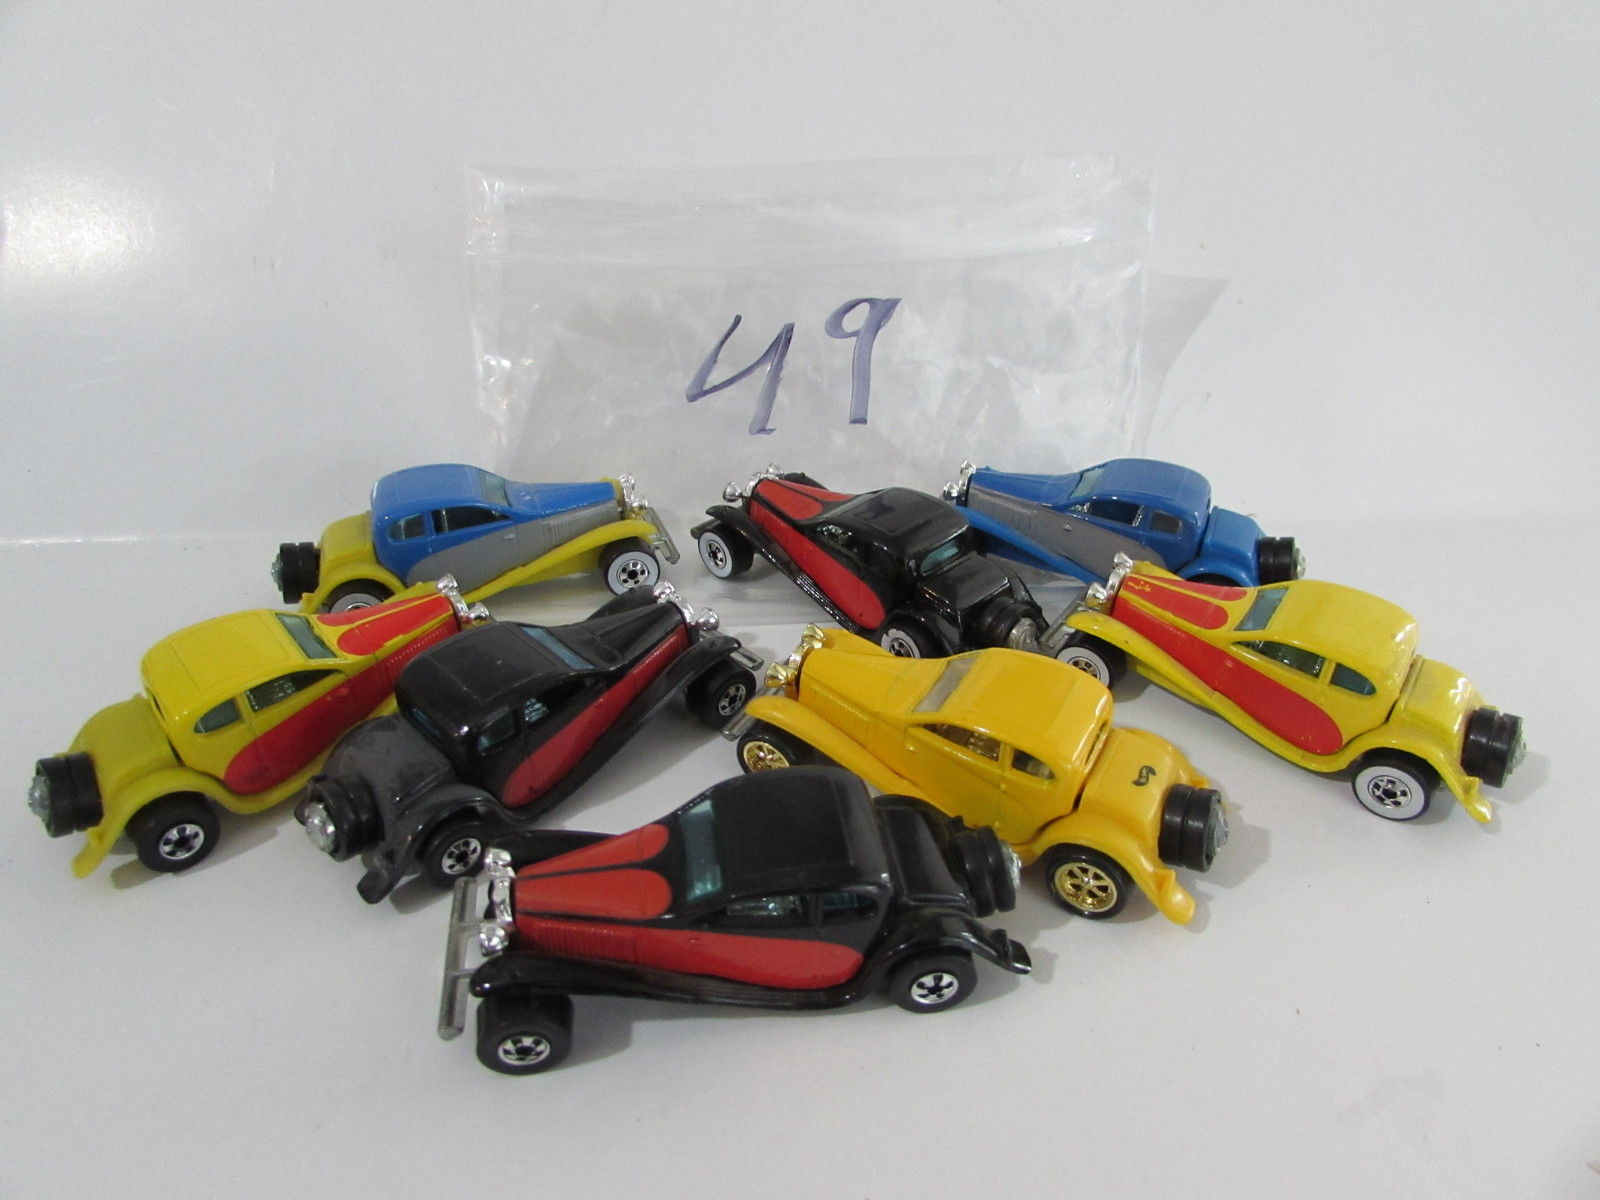 HOT WHEELS LOT OF 8 '37 BUGATTI BLACK YELLOW BLUE 1980 HONG KONG / MALAYSIA BASE